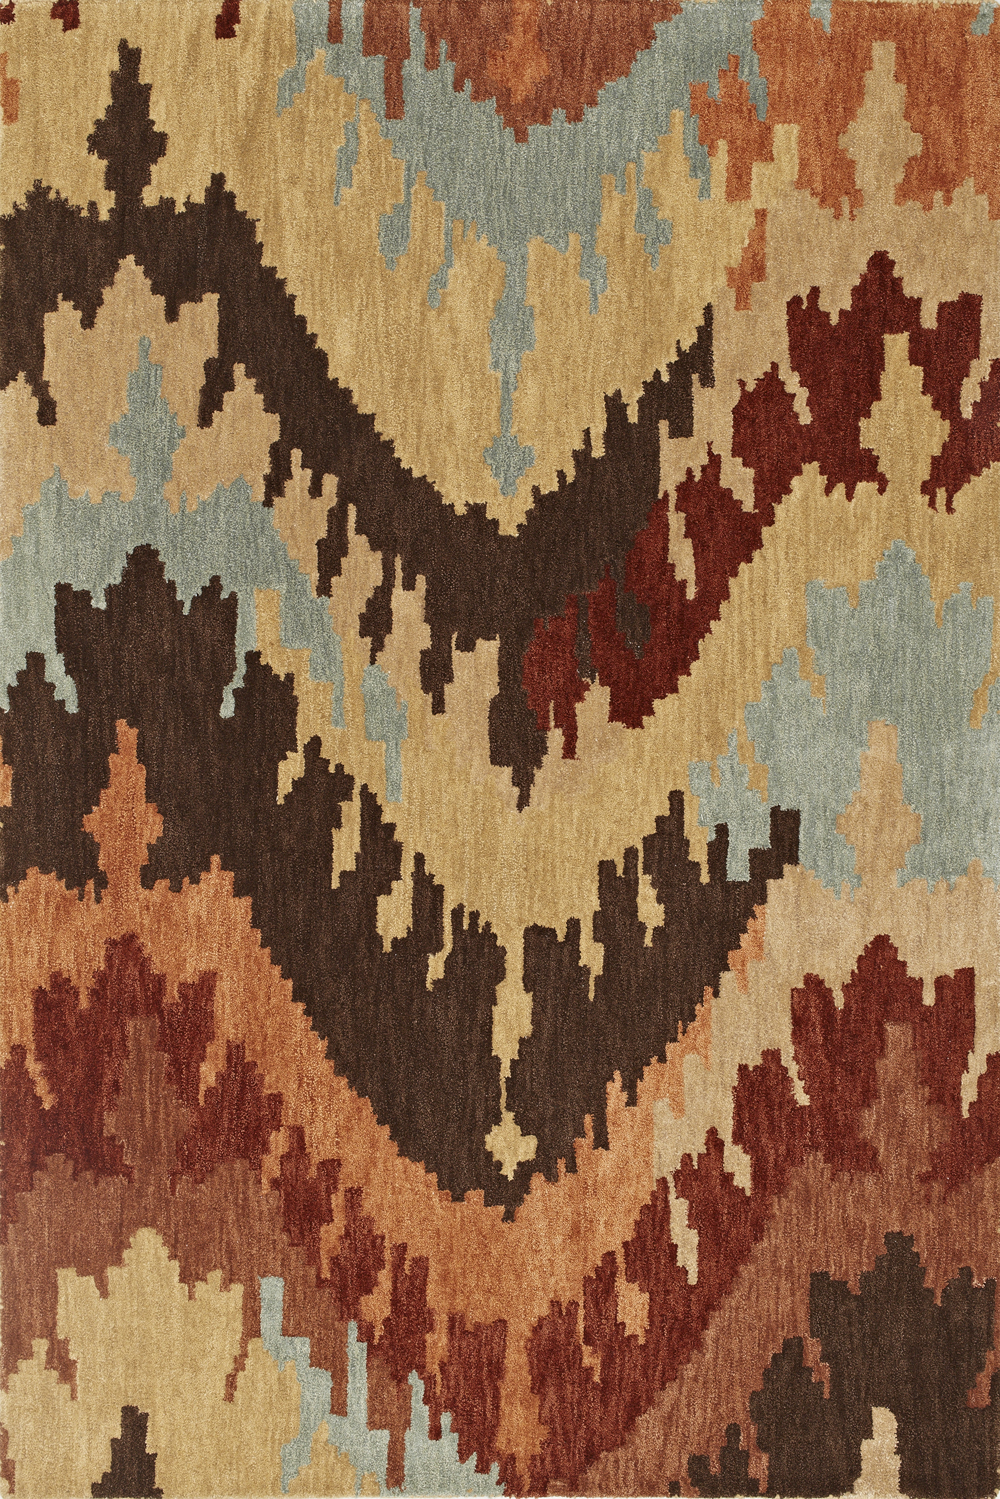 Impulse Taupe Ikat Art Silk Amp Hand Tufted Wool Pile Rug